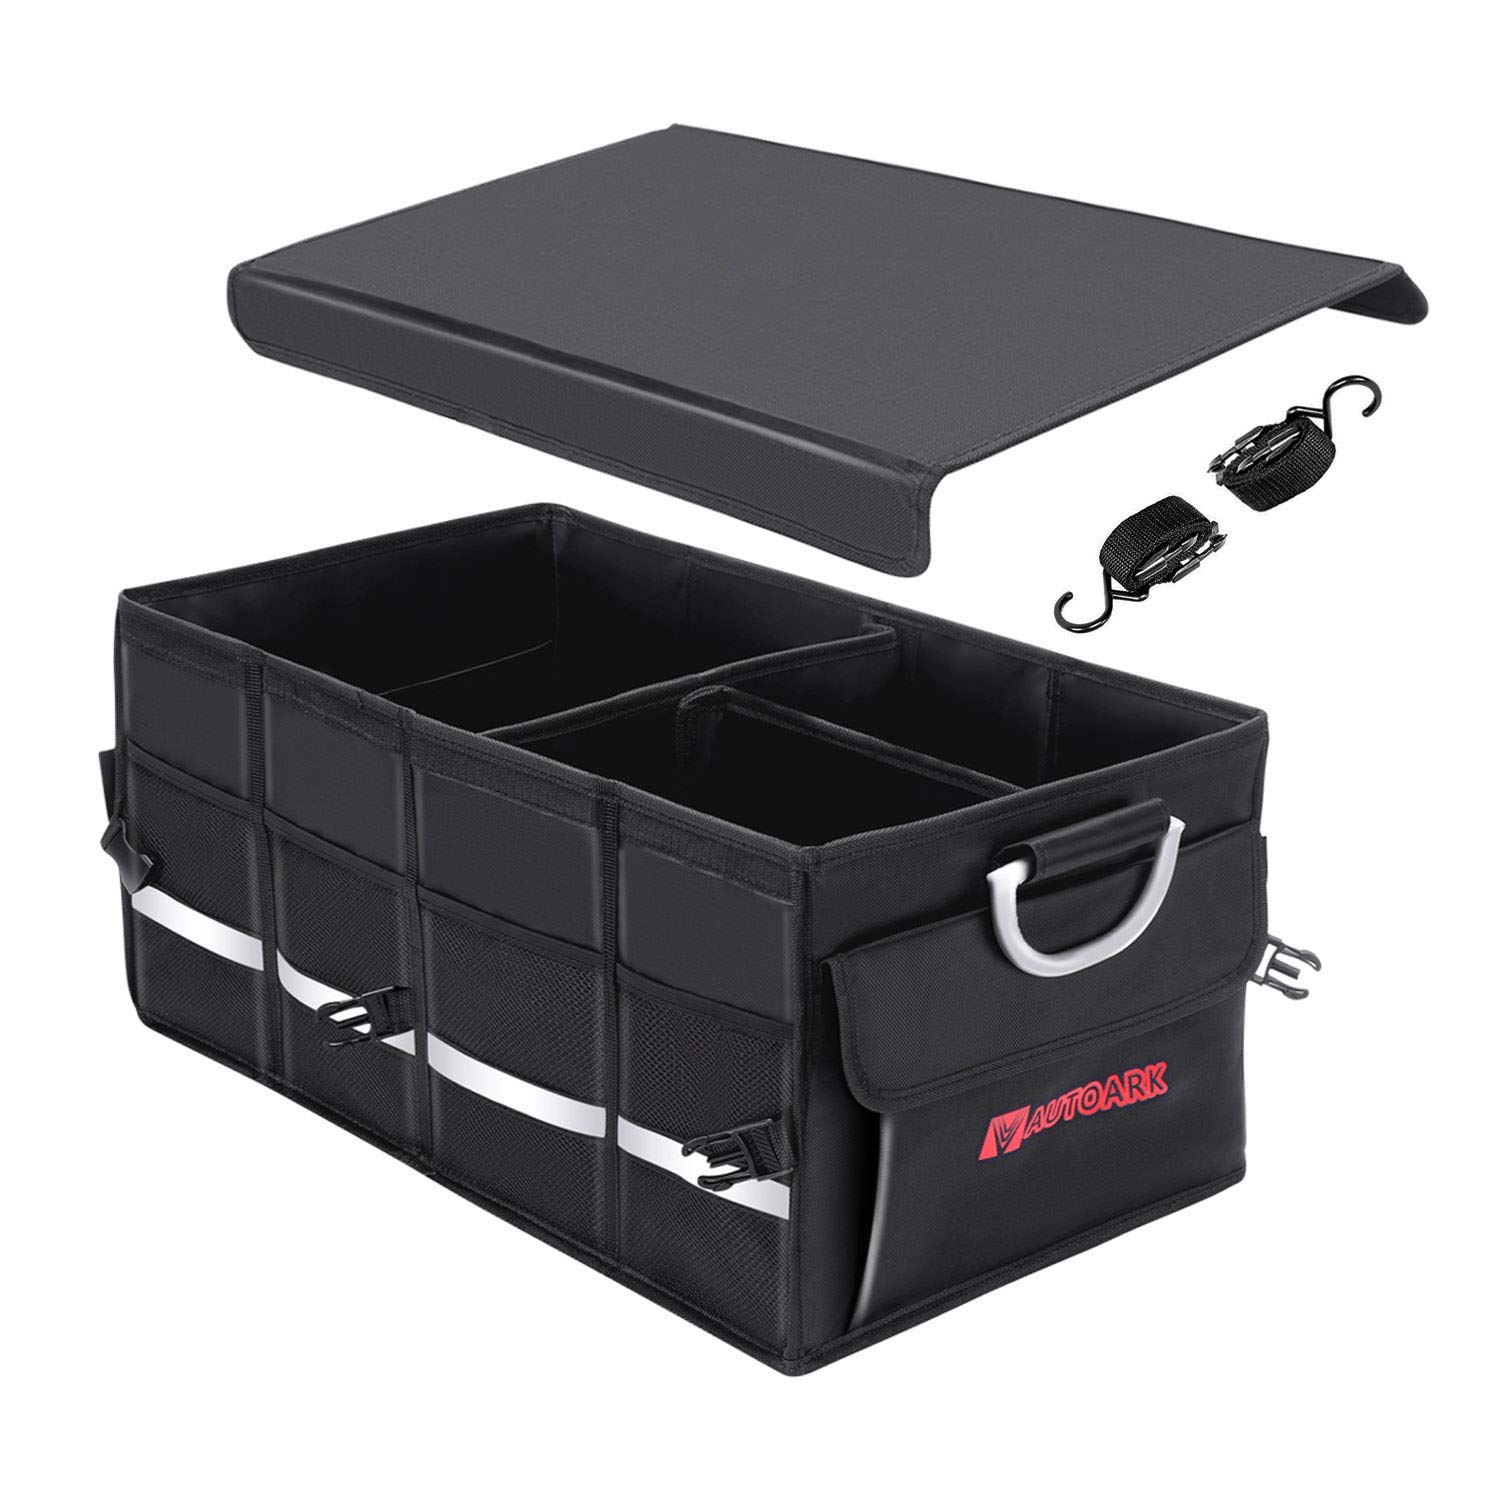 Autoark Multipurpose Car SUV Trunk Organizer with Cover and Straps,Durable Collapsible Adjustable Compartments Cargo Storage,AK-132